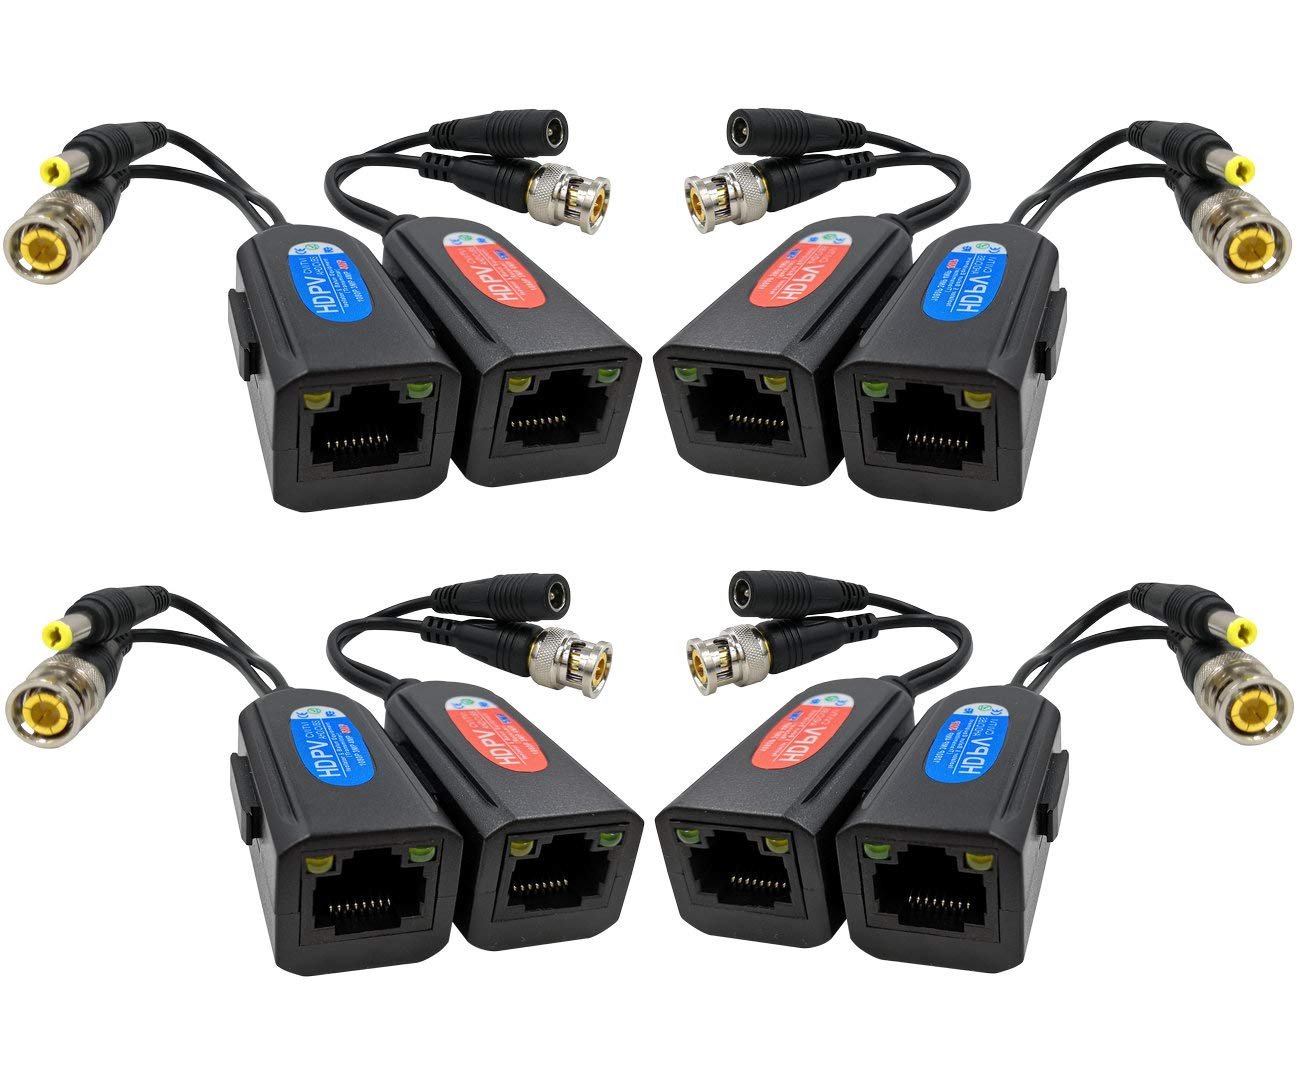 FocusHD 4 Pair Passive Video Balun 1080P-5MP BNC to RJ45 Adapter with Power, Upgraded with Ground Loop Isolated Security Camera Network Transceiver Cat5e/Cat6 Cable to BNC Connectors -8Pack by FOCUSHD